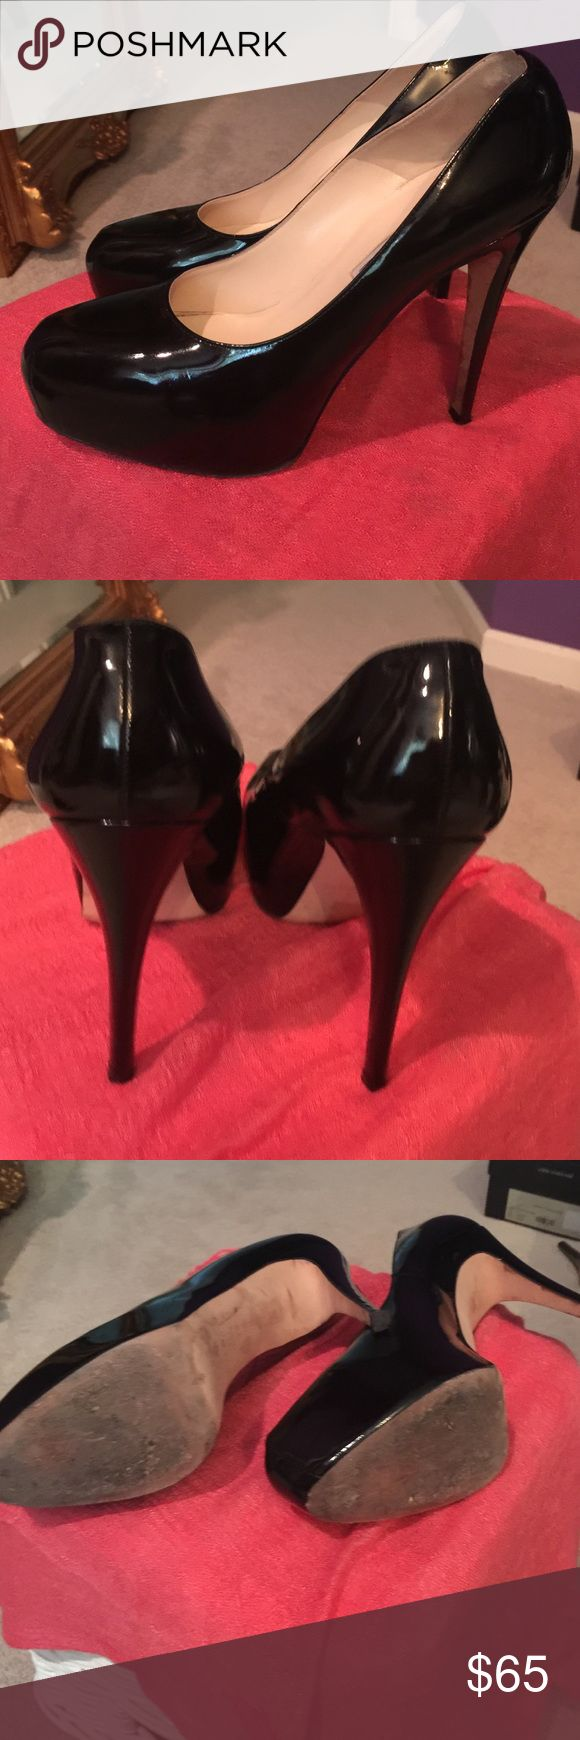 Brian Atwood Manic Pumps In great shape. Only obvious sign of wear is on the soles. The heels are in great shape. No tears in the leather. Black patent leather Brian Attwood Shoes Platforms